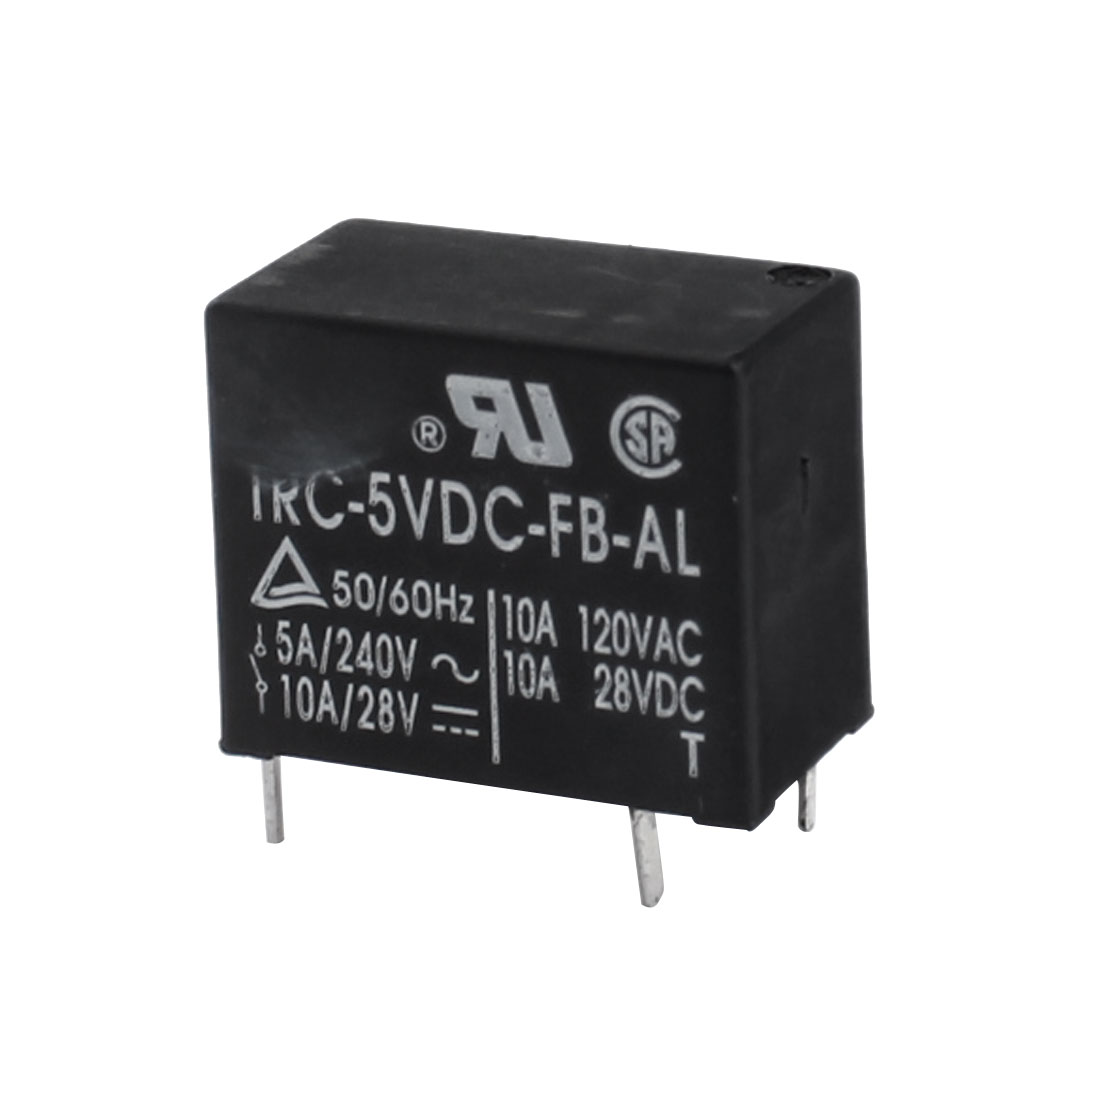 DC 5V Coil Voltage 4-Pin SPST Normal Open PCB Type General Purpose Power Relay Black